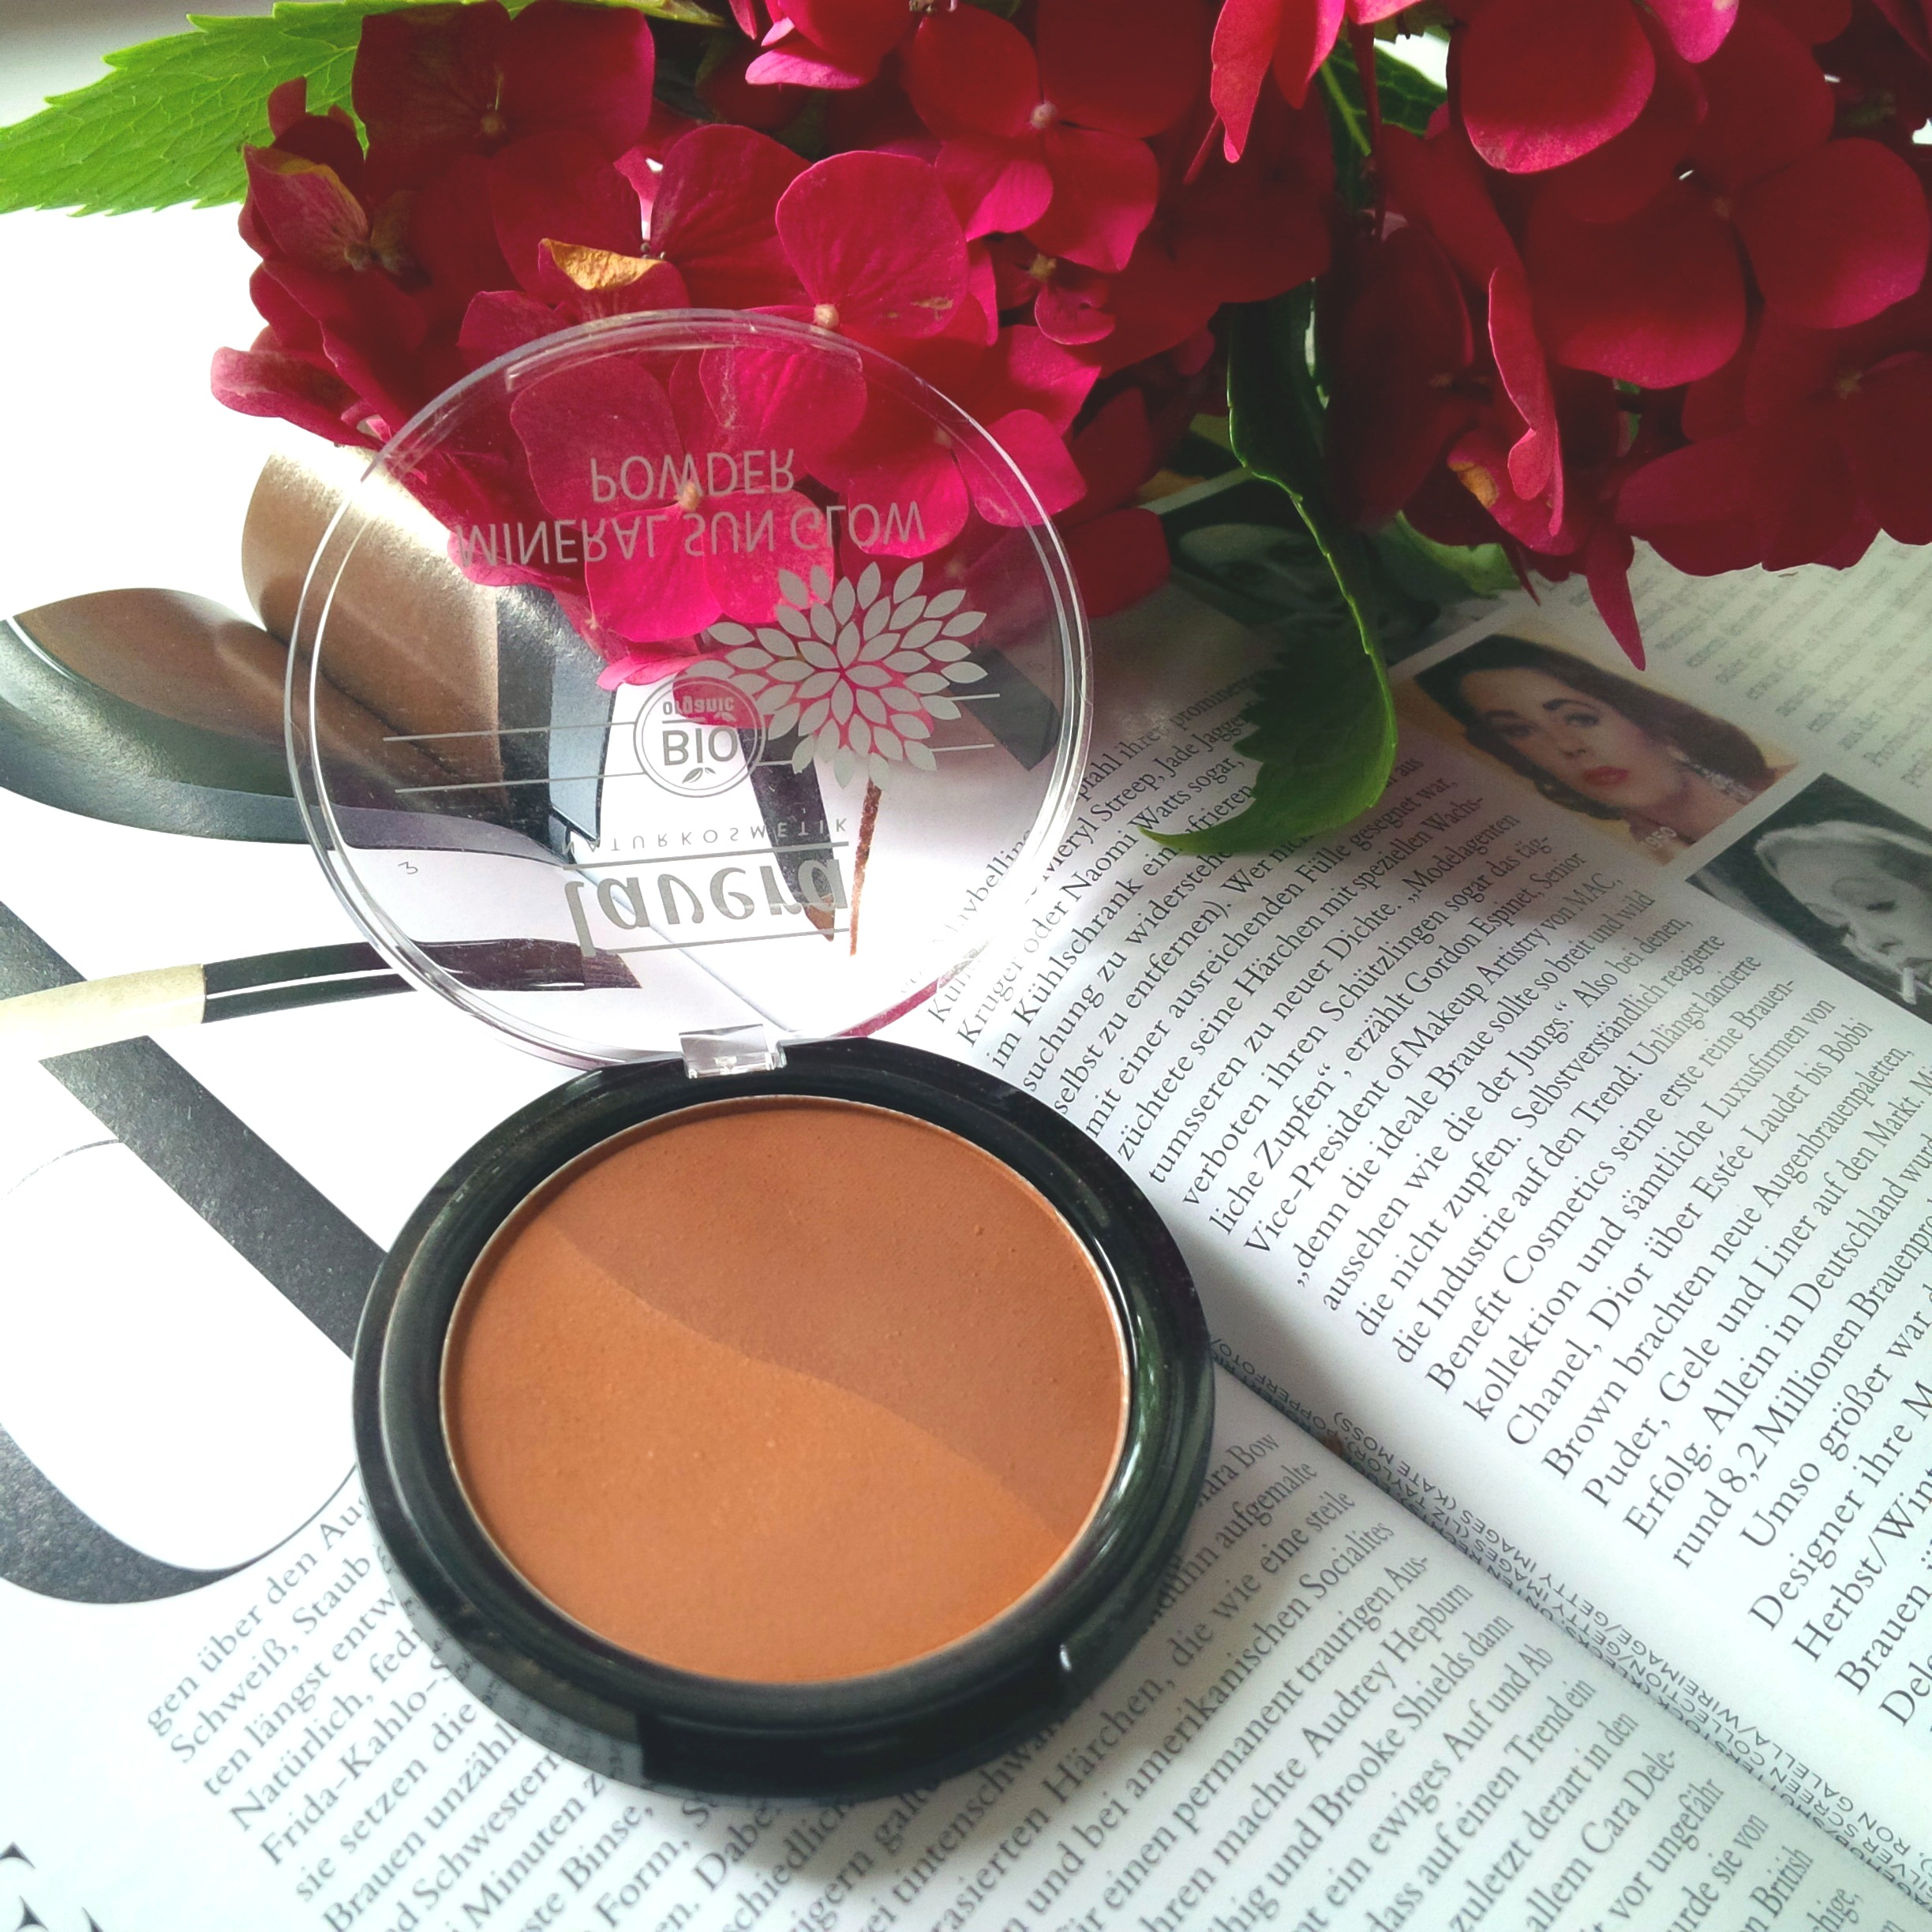 Liebe Woche - My Current Makeup Favorites. Lavera dekorative Naturkosmetik. Sommer 2016. Nude. Rose. Shine . Sun Glow Bronzepuder Golden Sahara.jpg